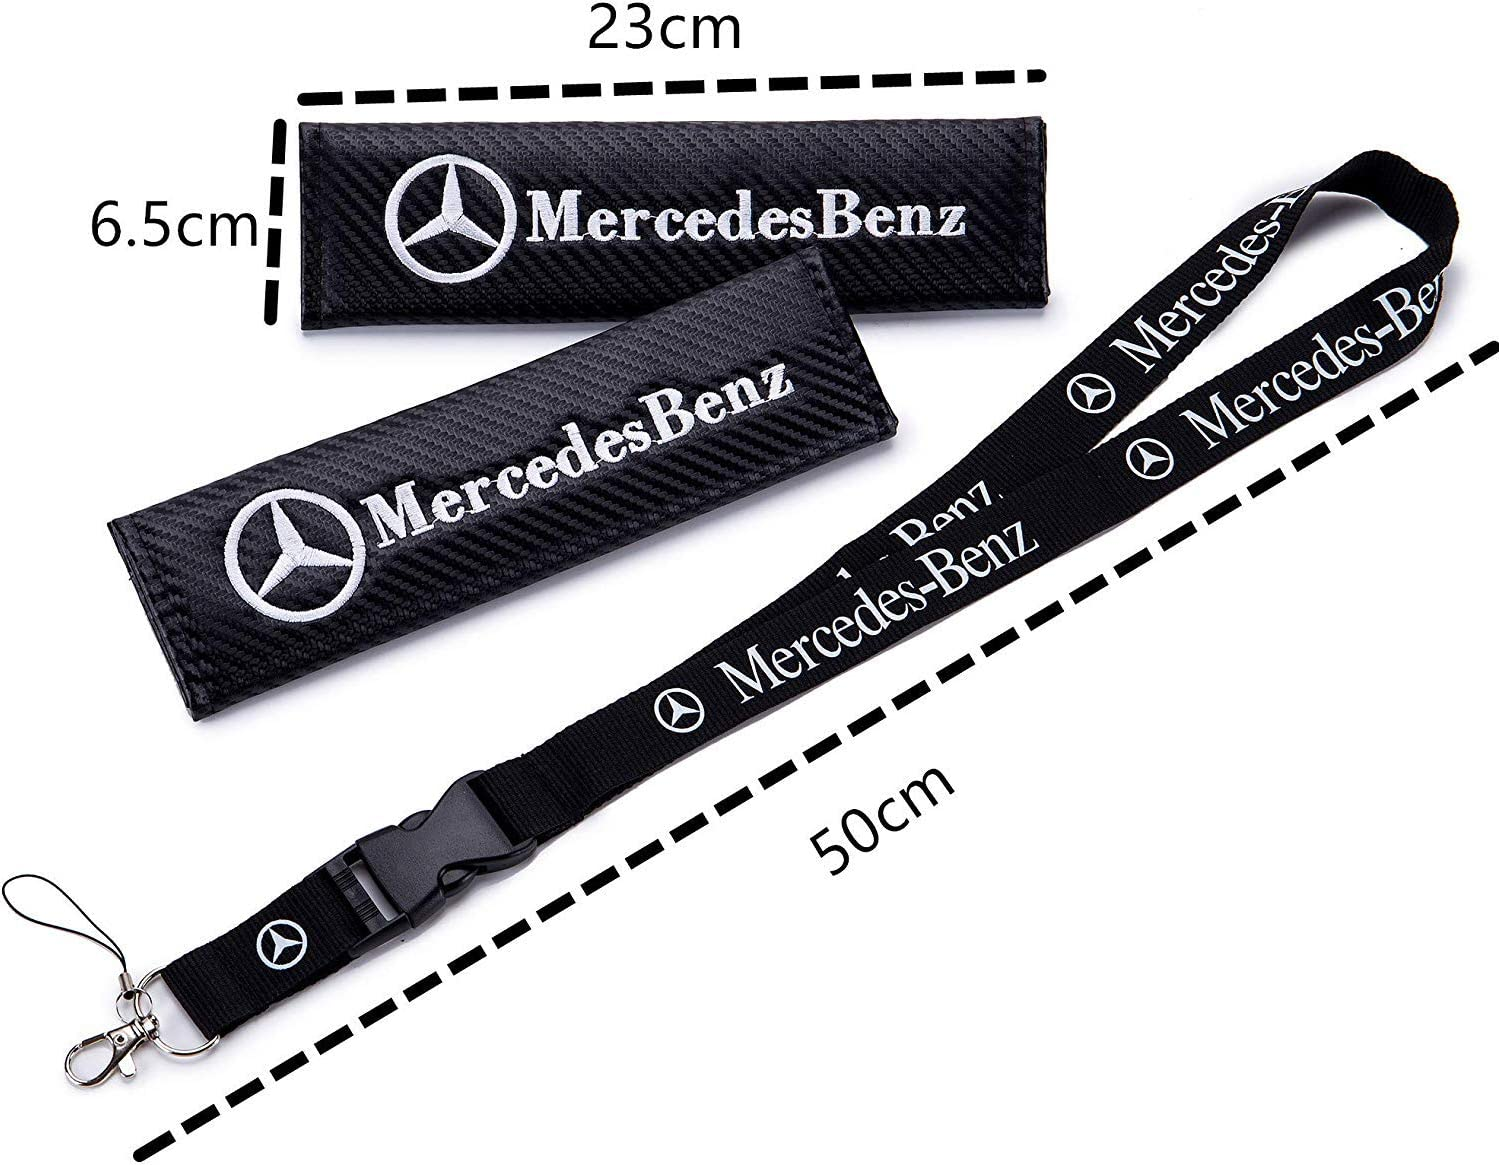 Kingshun Car Seat Belt Cover Pads for Ben z Carbon Fiber Car Safety Belt Cover Neck Shoulder Cushion Pads with Keychain Lanyard Badge Holder Cars Accessorices for Adults and Children 3 Pack